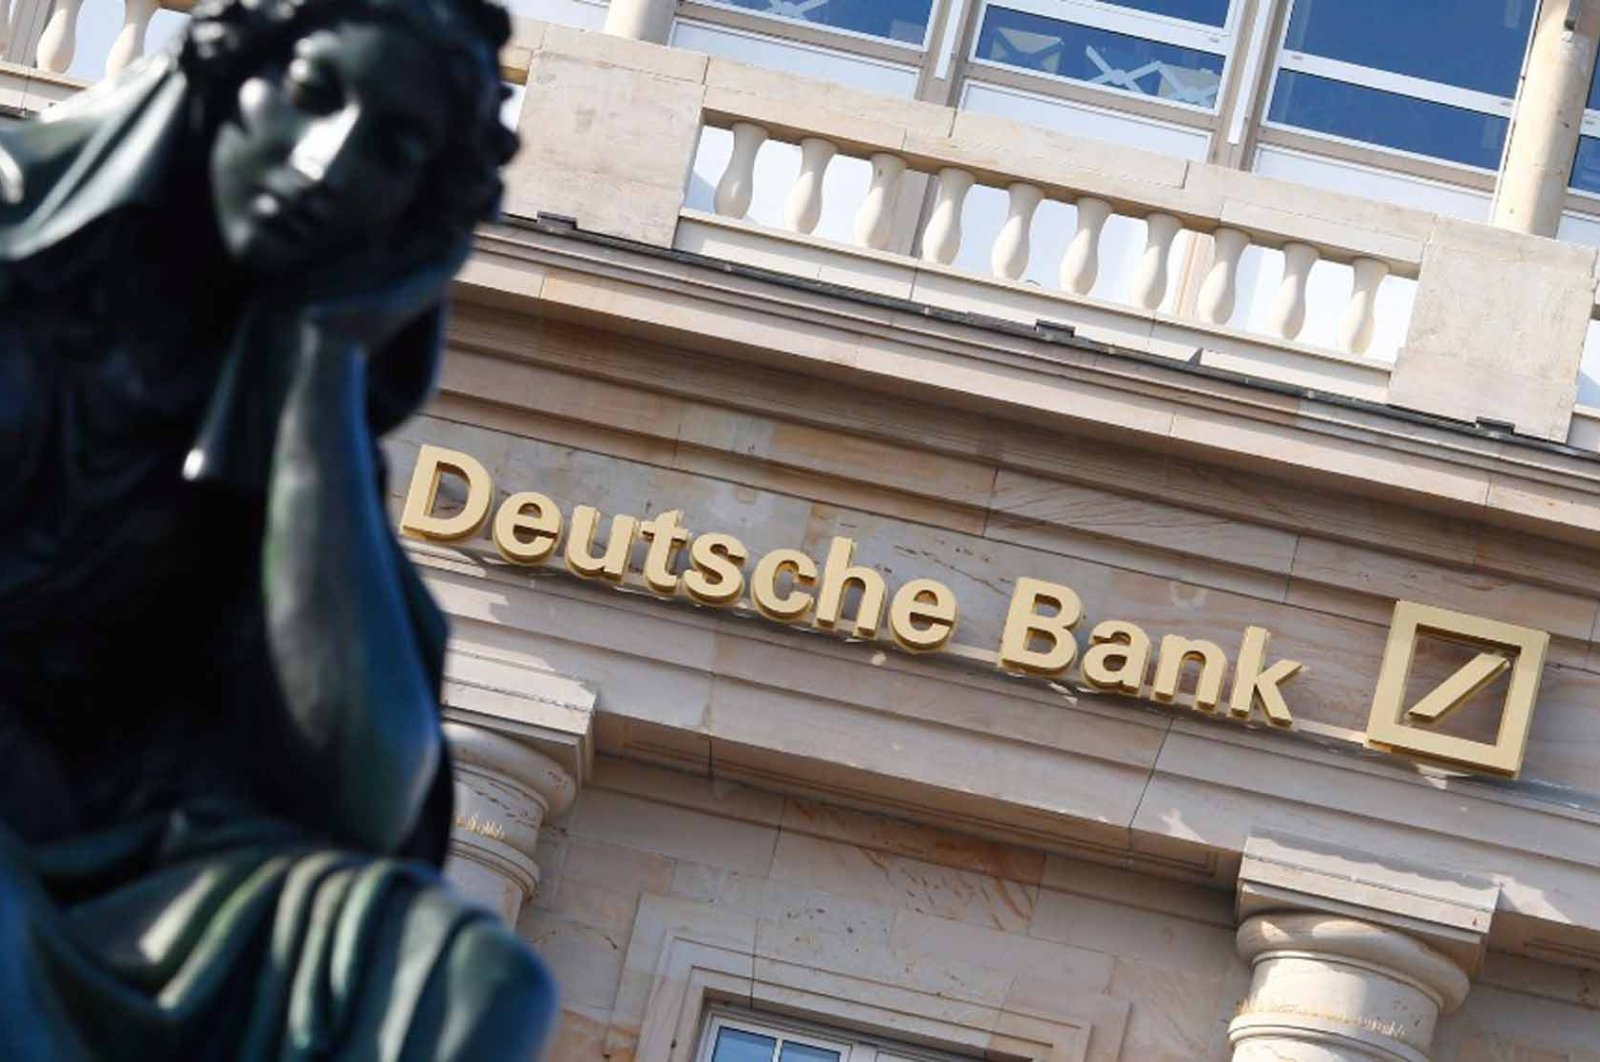 Undated file photo of branch of Deutsche Bank. The bank accounts for 62% of all Suspicious Activities Reports uncovered in the FinCEN Files investigation.